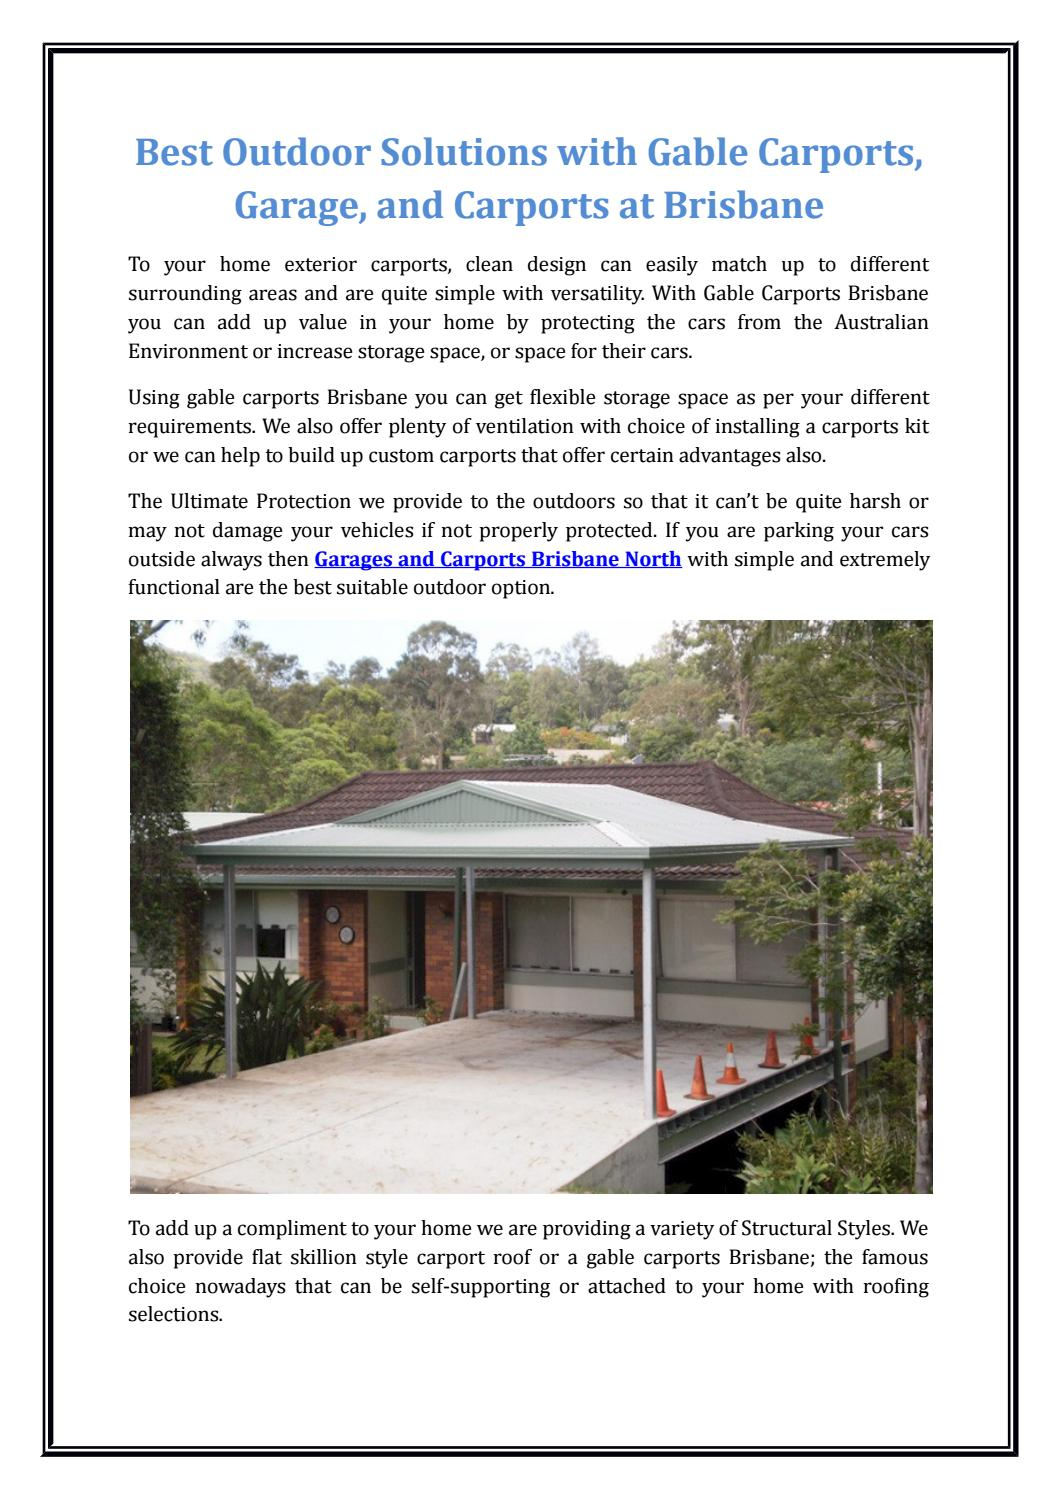 Best Outdoor Solutions With Gable Carports Garage And Carports